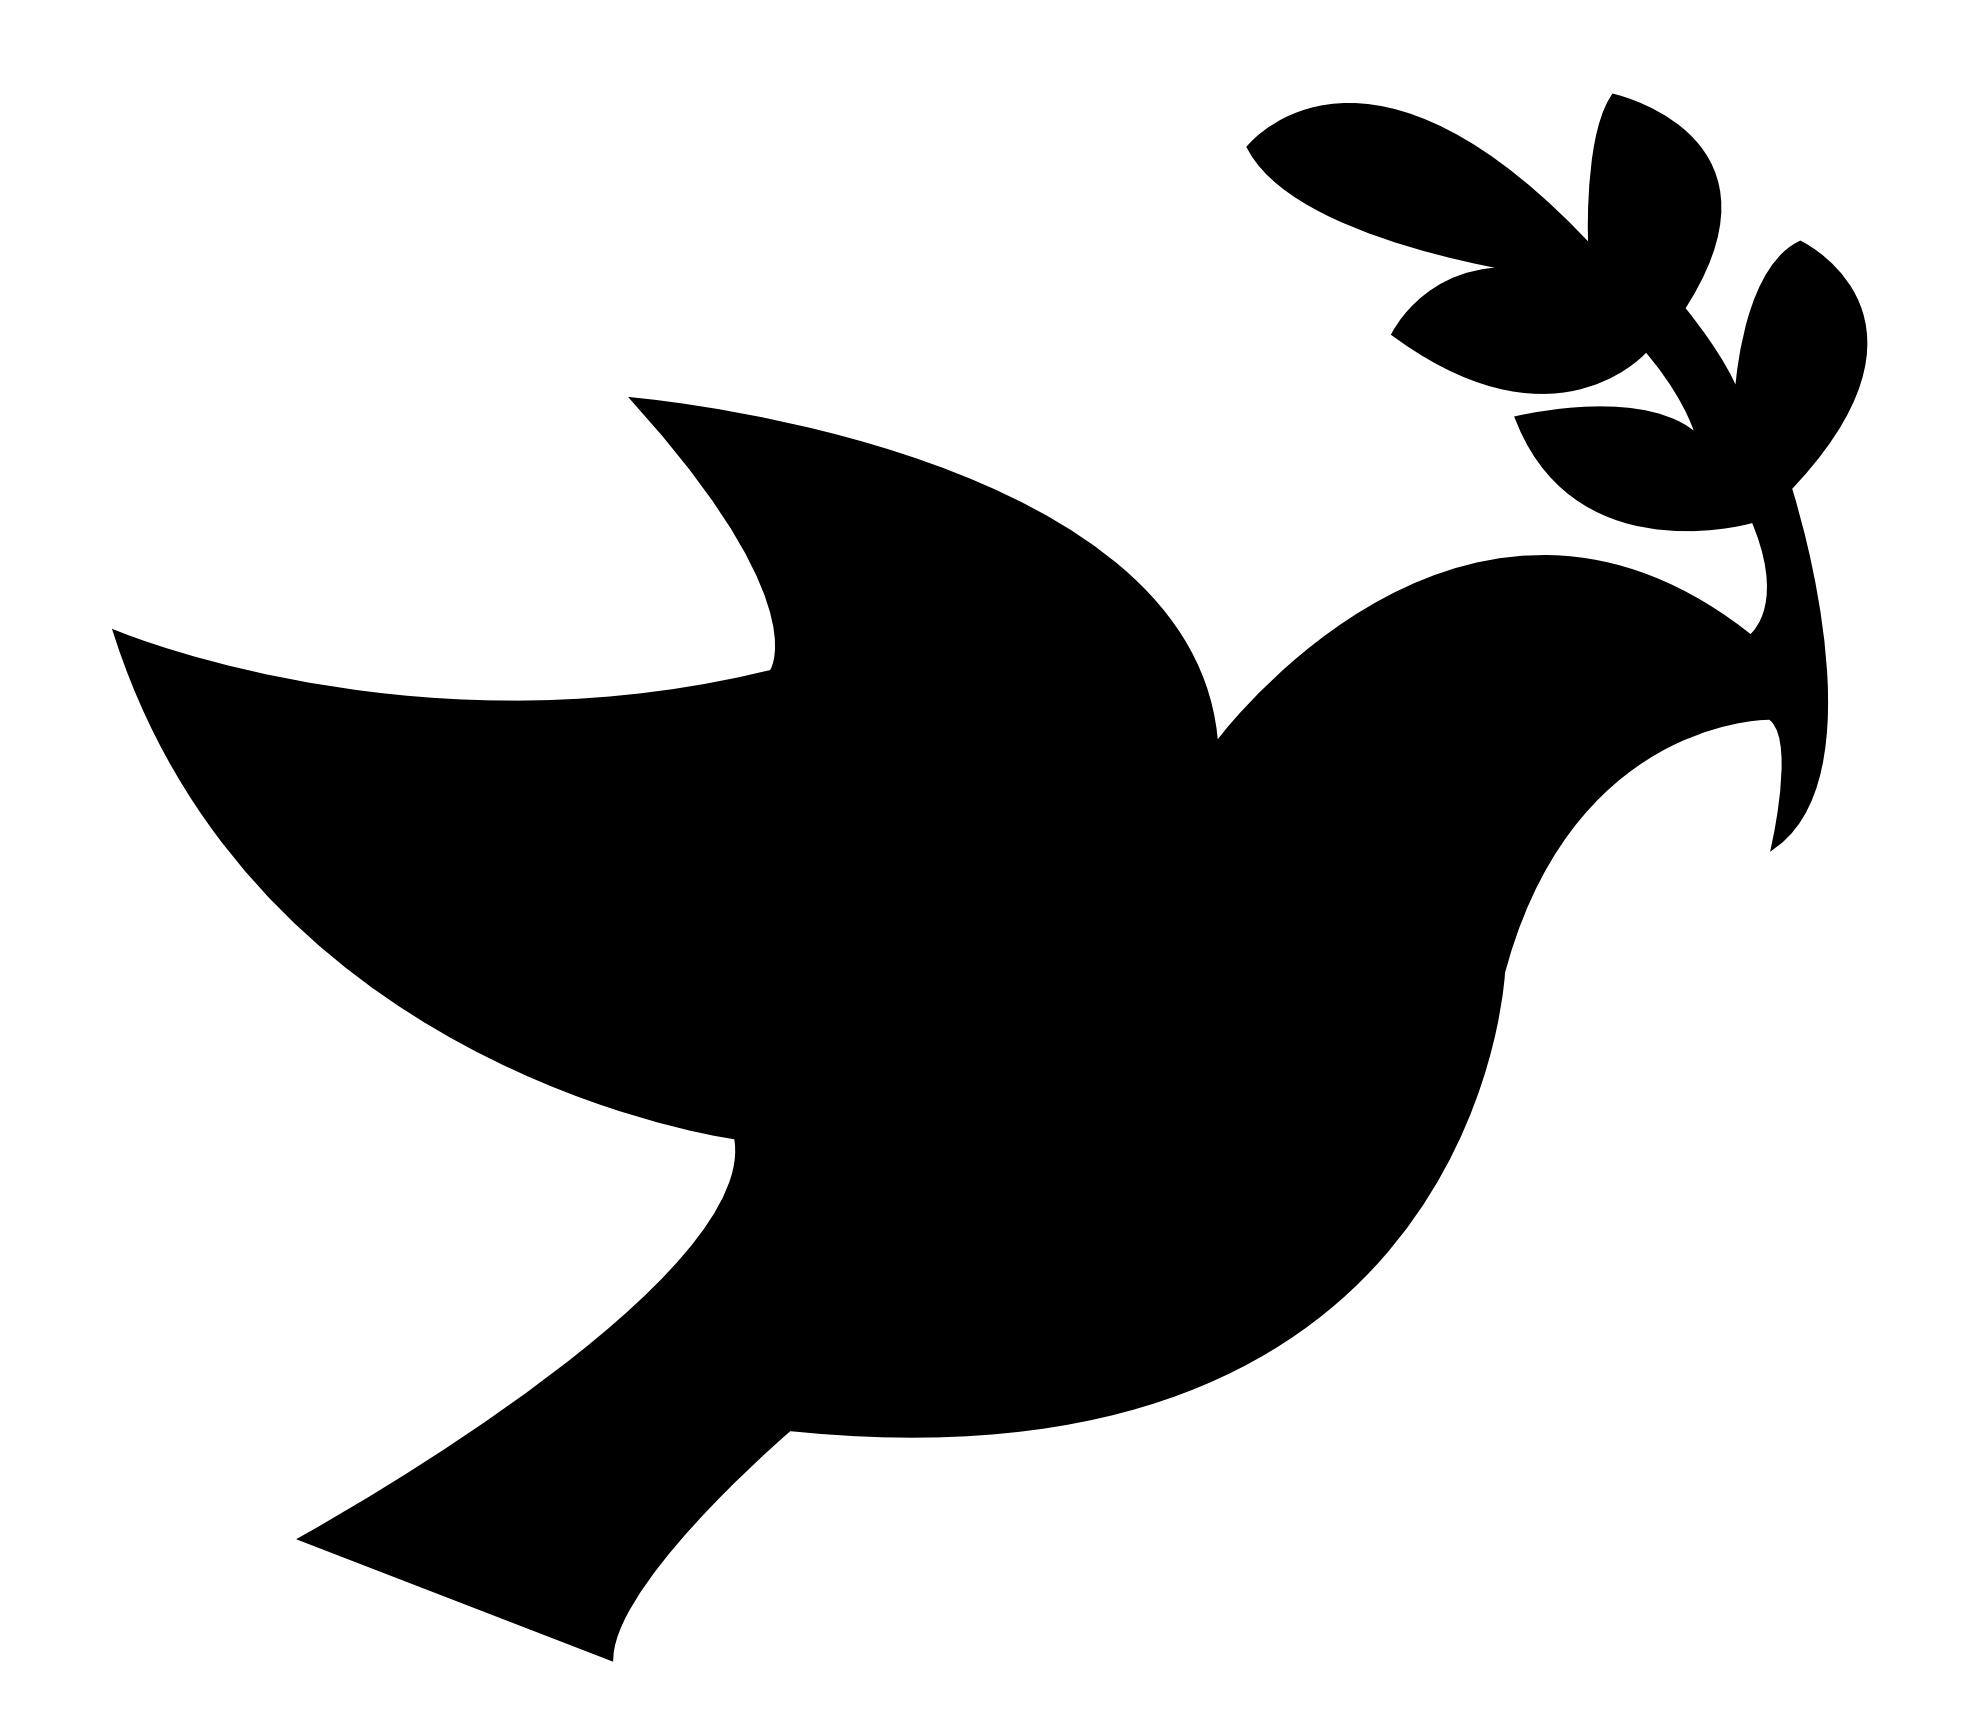 Peace dove png. Transparent stickpng